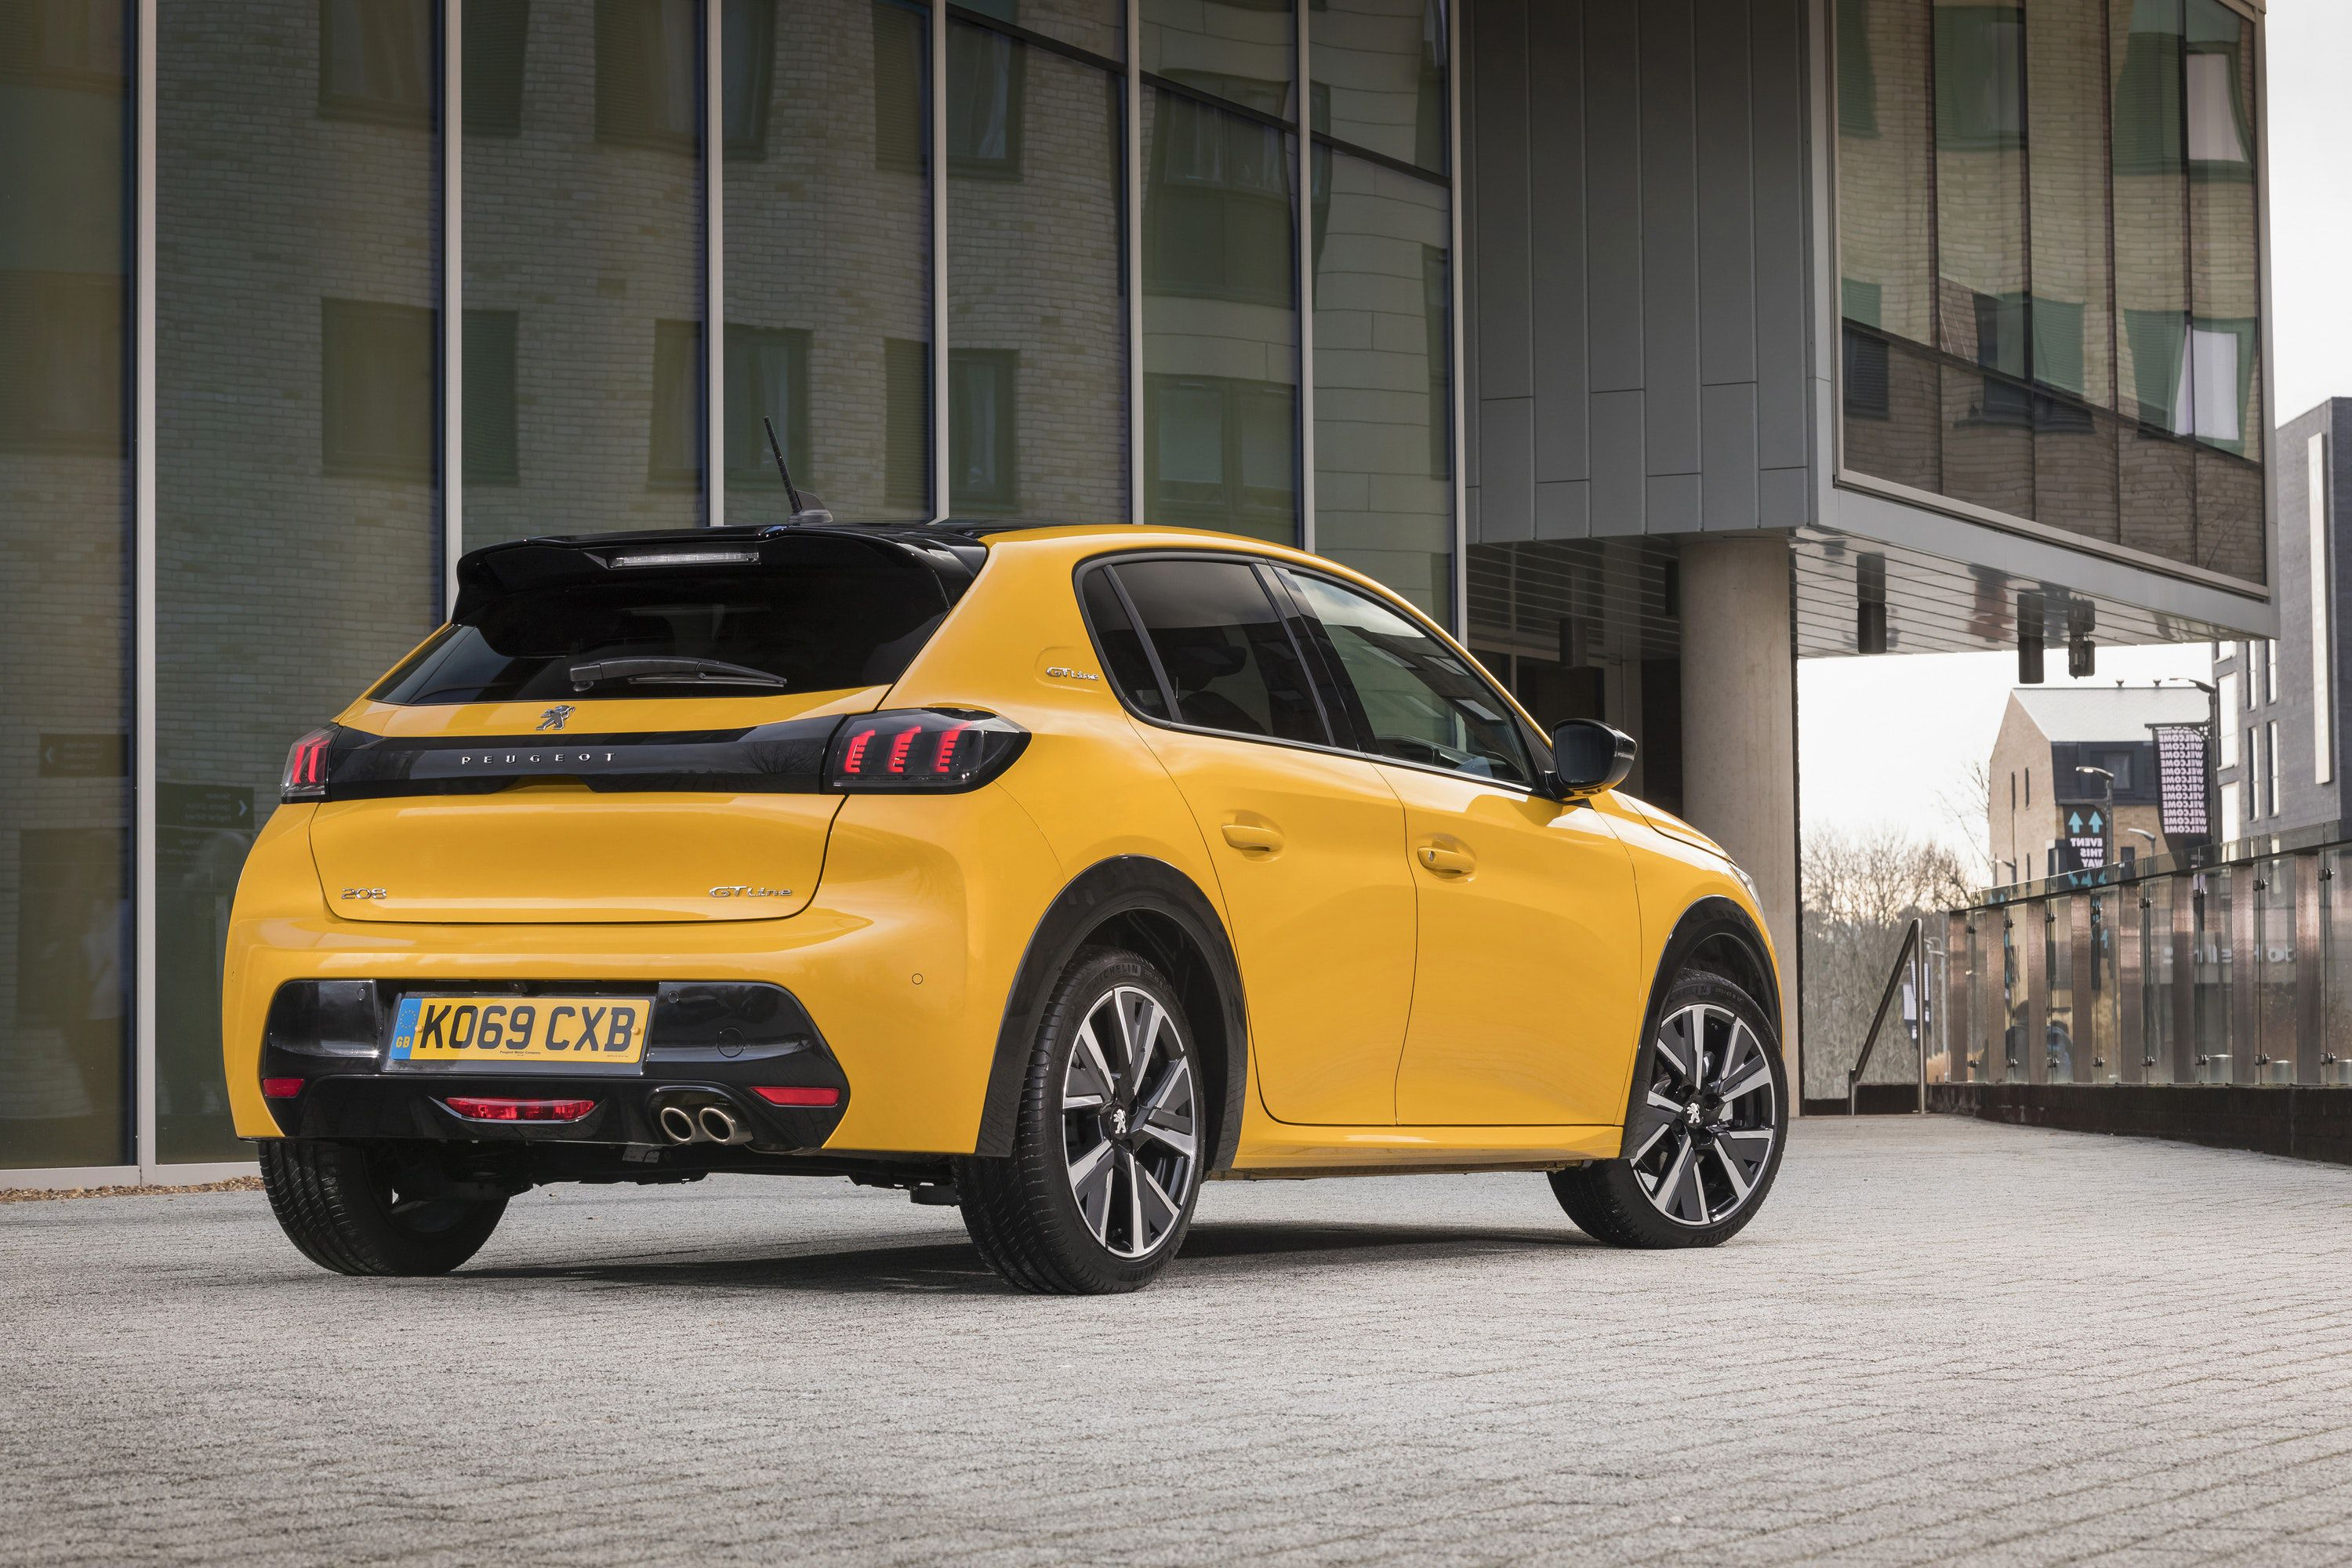 Rear view of New Peugeot 208